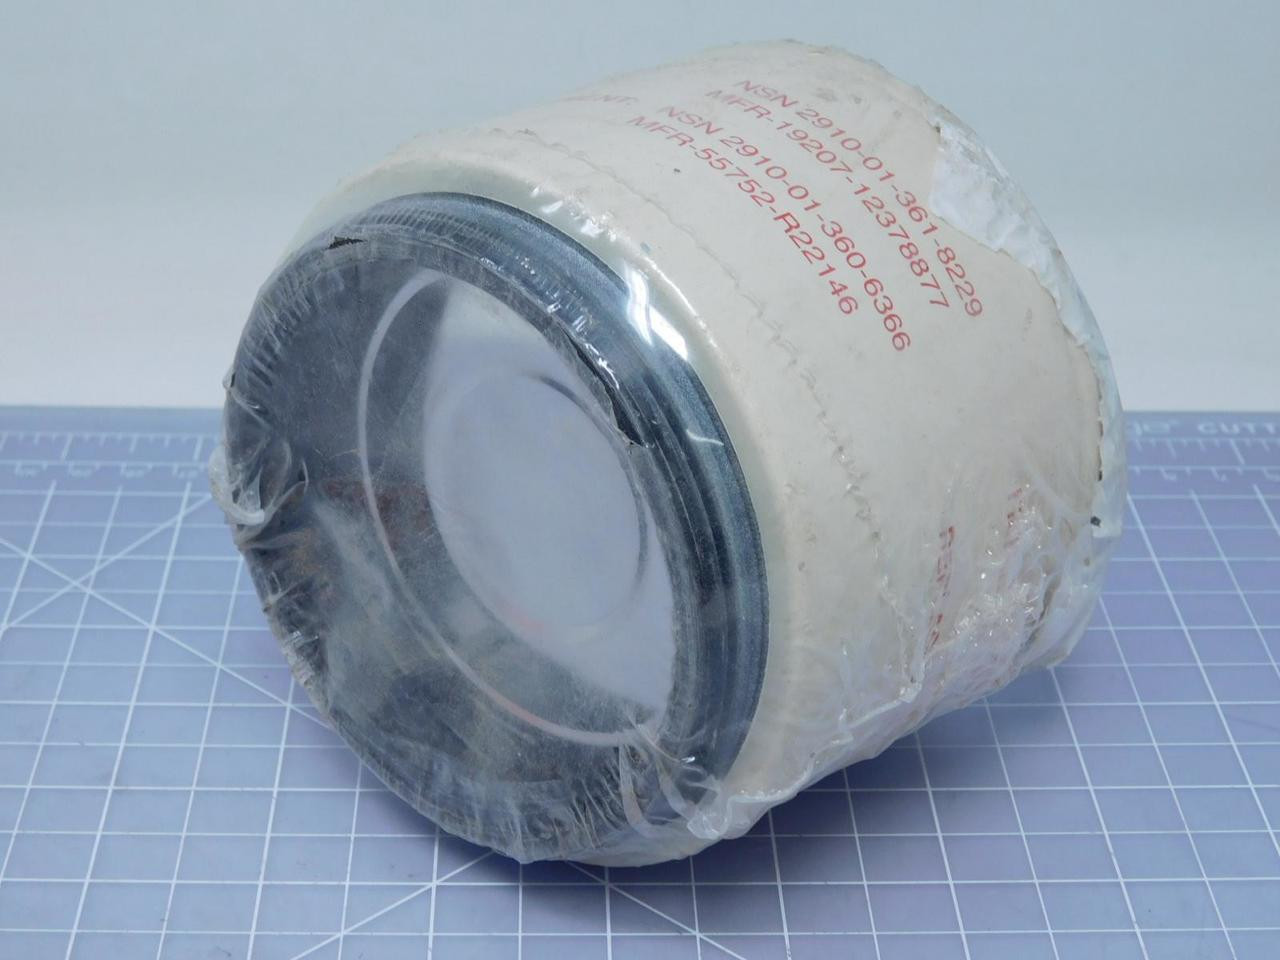 Parker Nsn 2910 01 361 8229 Fuel Filter T118540 Test Equipment And For Sale